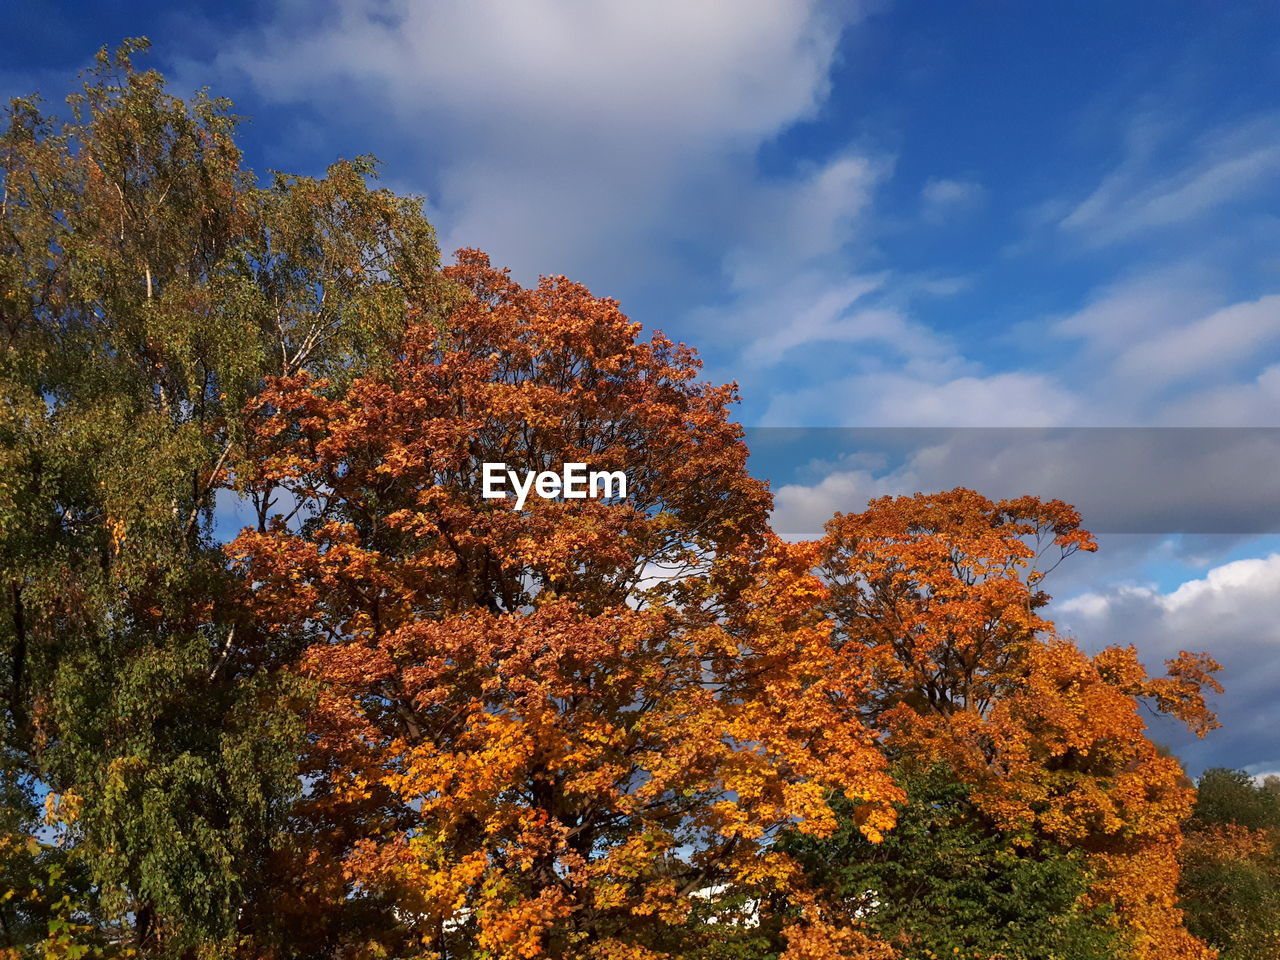 tree, plant, change, autumn, sky, beauty in nature, cloud - sky, low angle view, tranquility, growth, orange color, nature, day, no people, scenics - nature, tranquil scene, outdoors, idyllic, non-urban scene, branch, fall